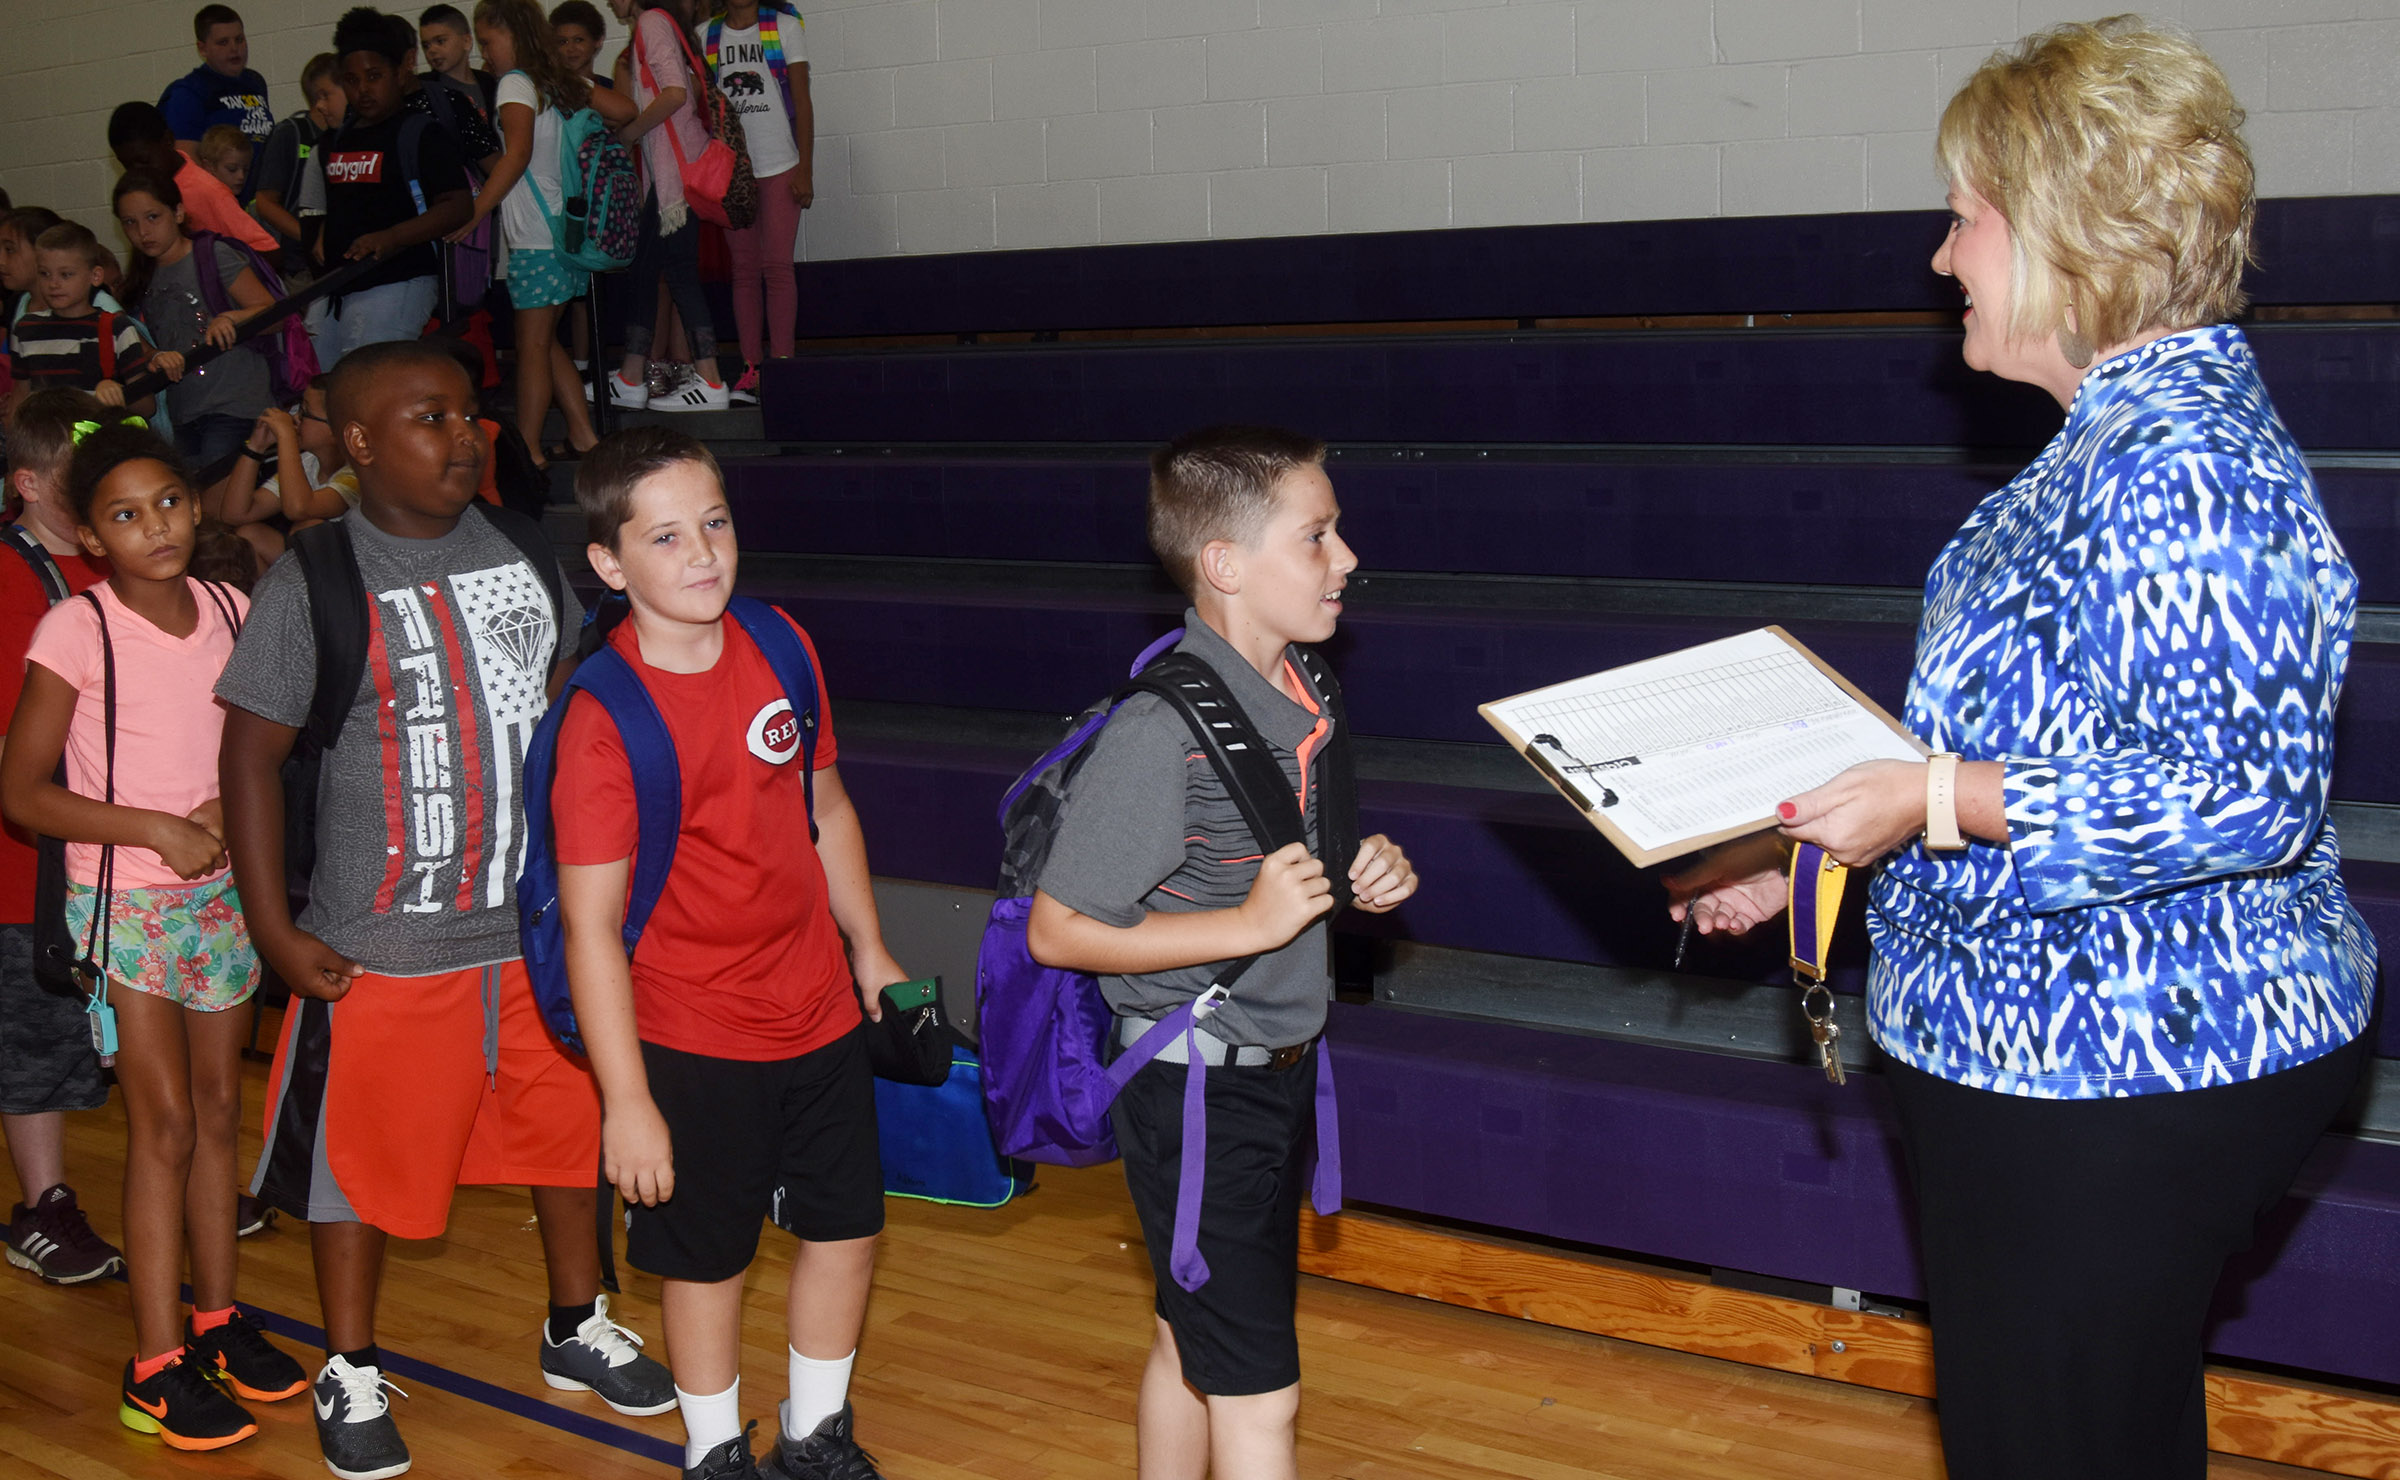 Campbellsville Elementary School fourth-grade teacher Kaye Agathen walks her students to their classroom.